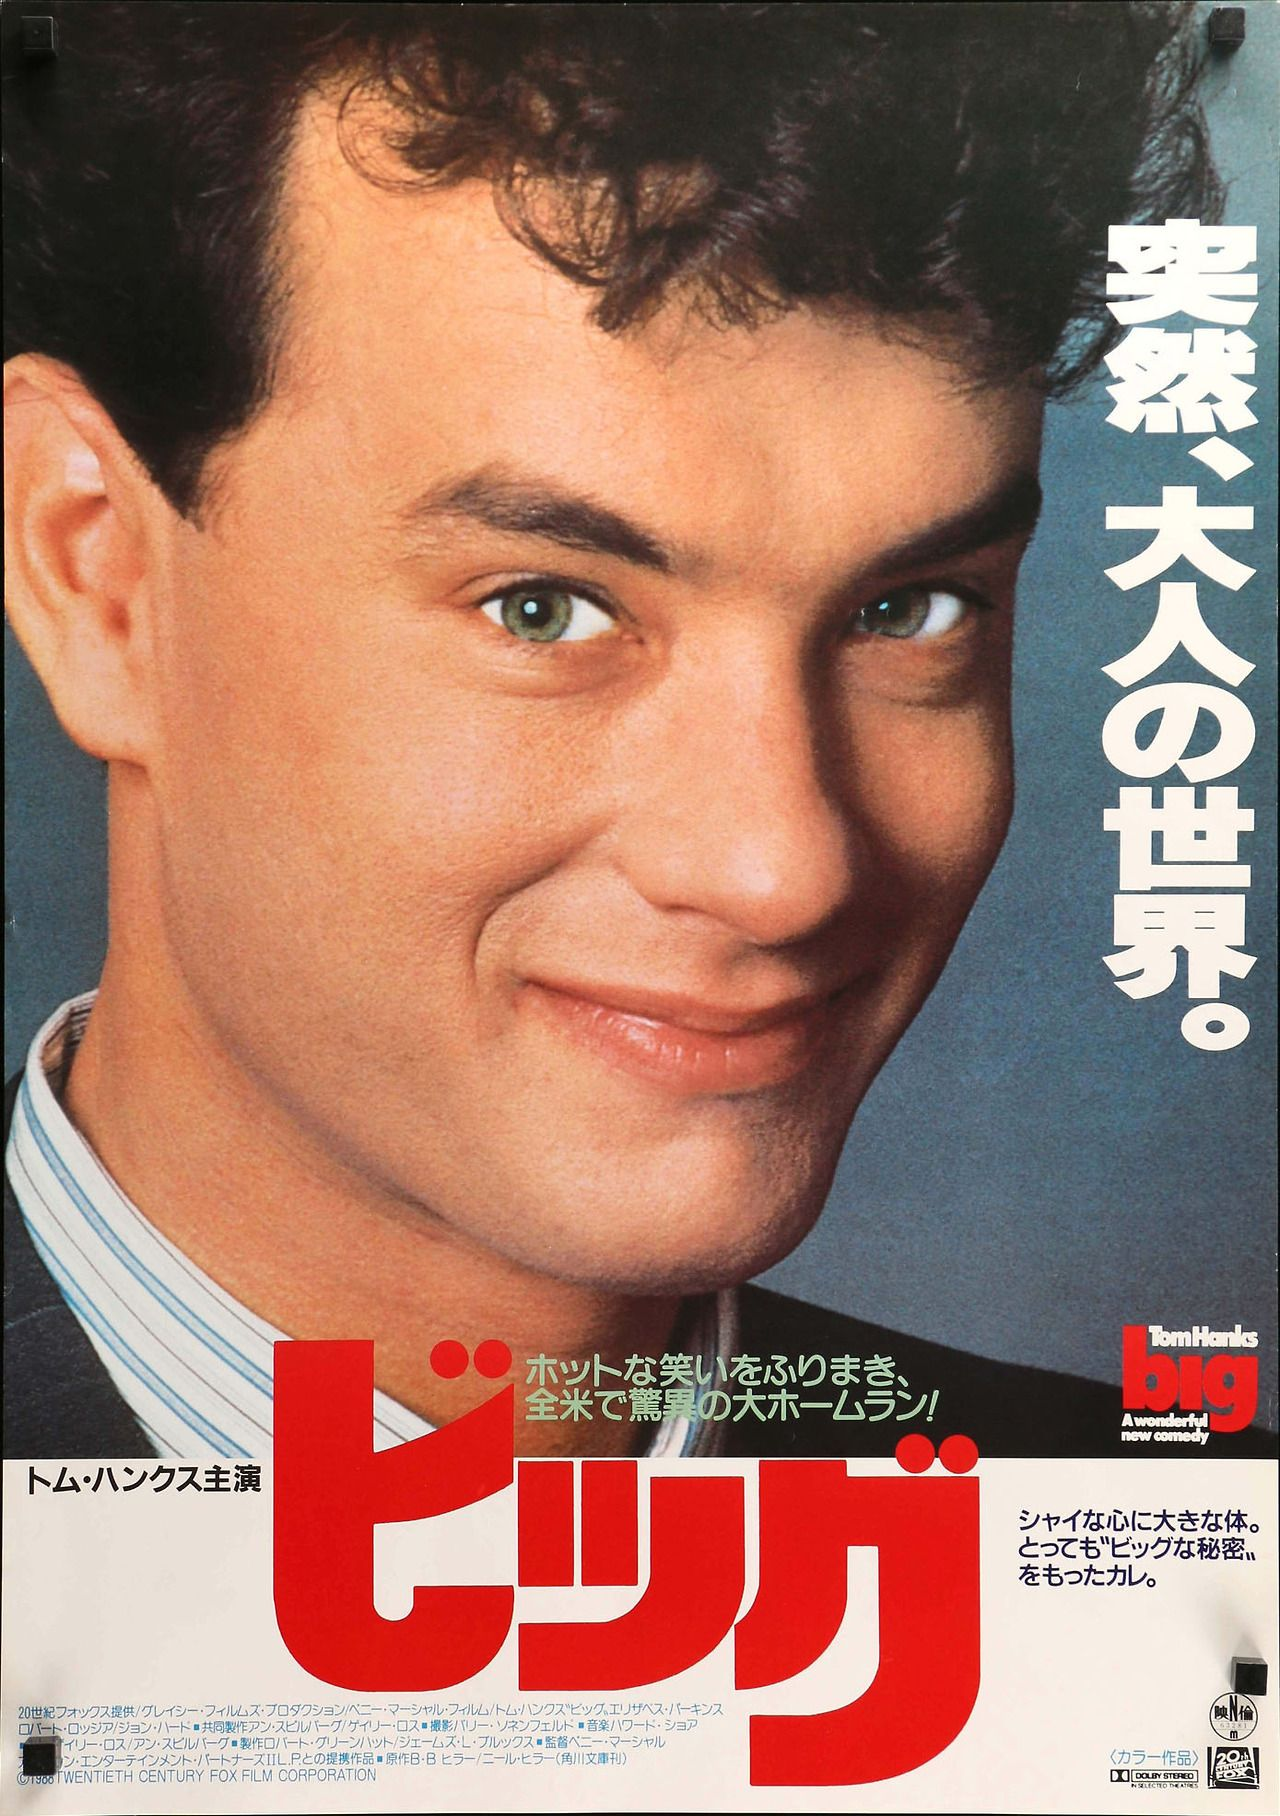 Big De Penny Marshall 1988 Tom Hanks In 2019 Movie Posters